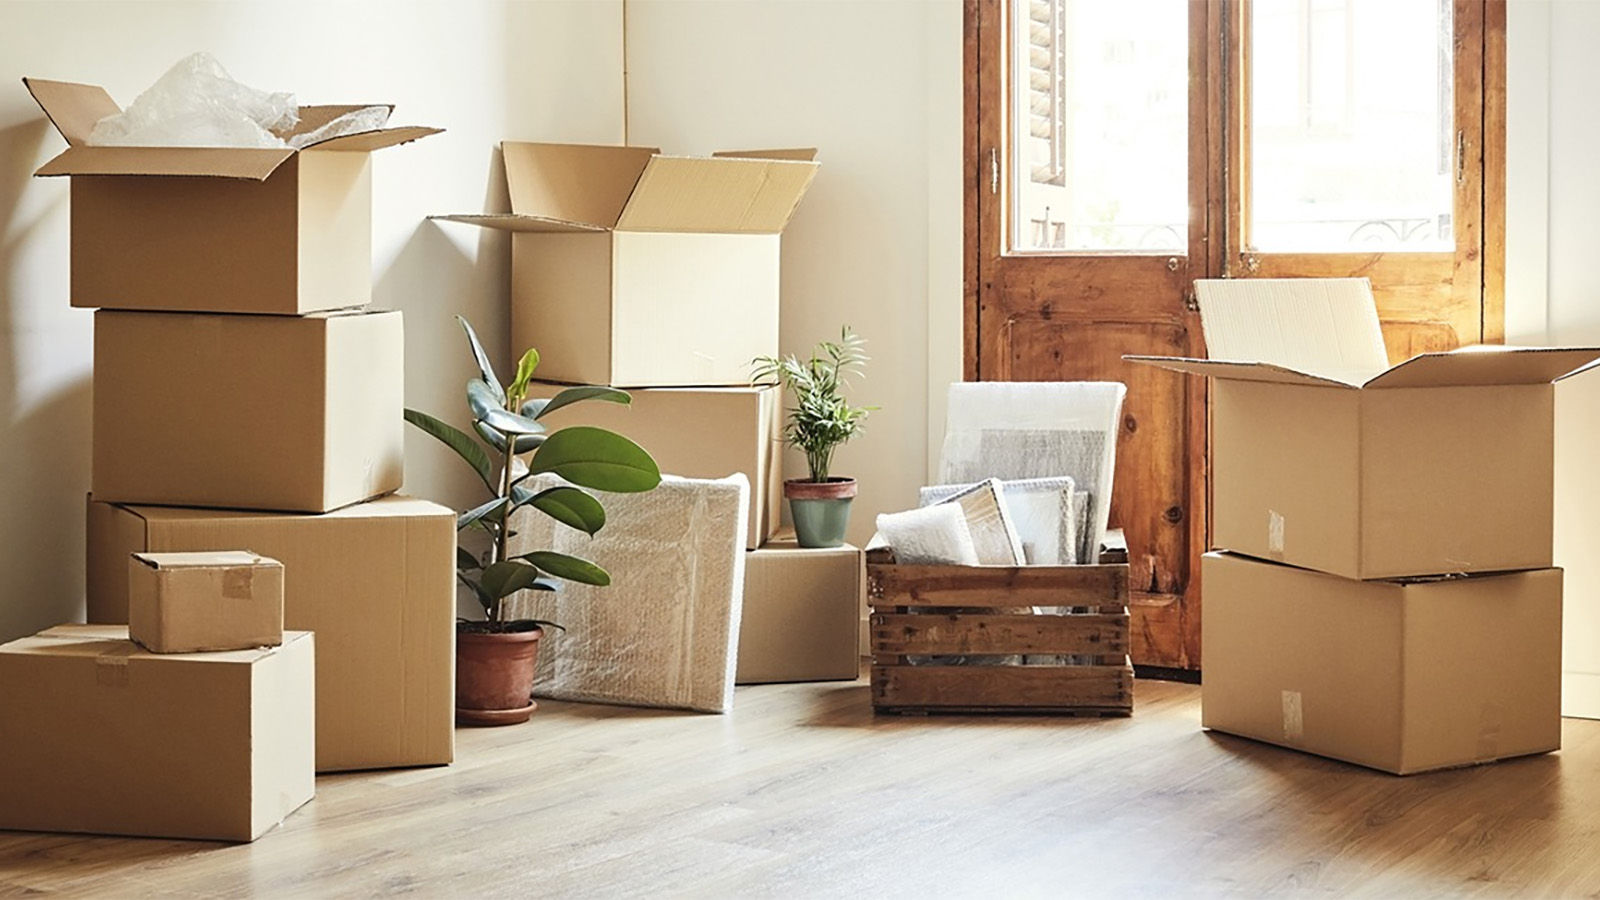 Moving boxes and plants on the floor of a home.